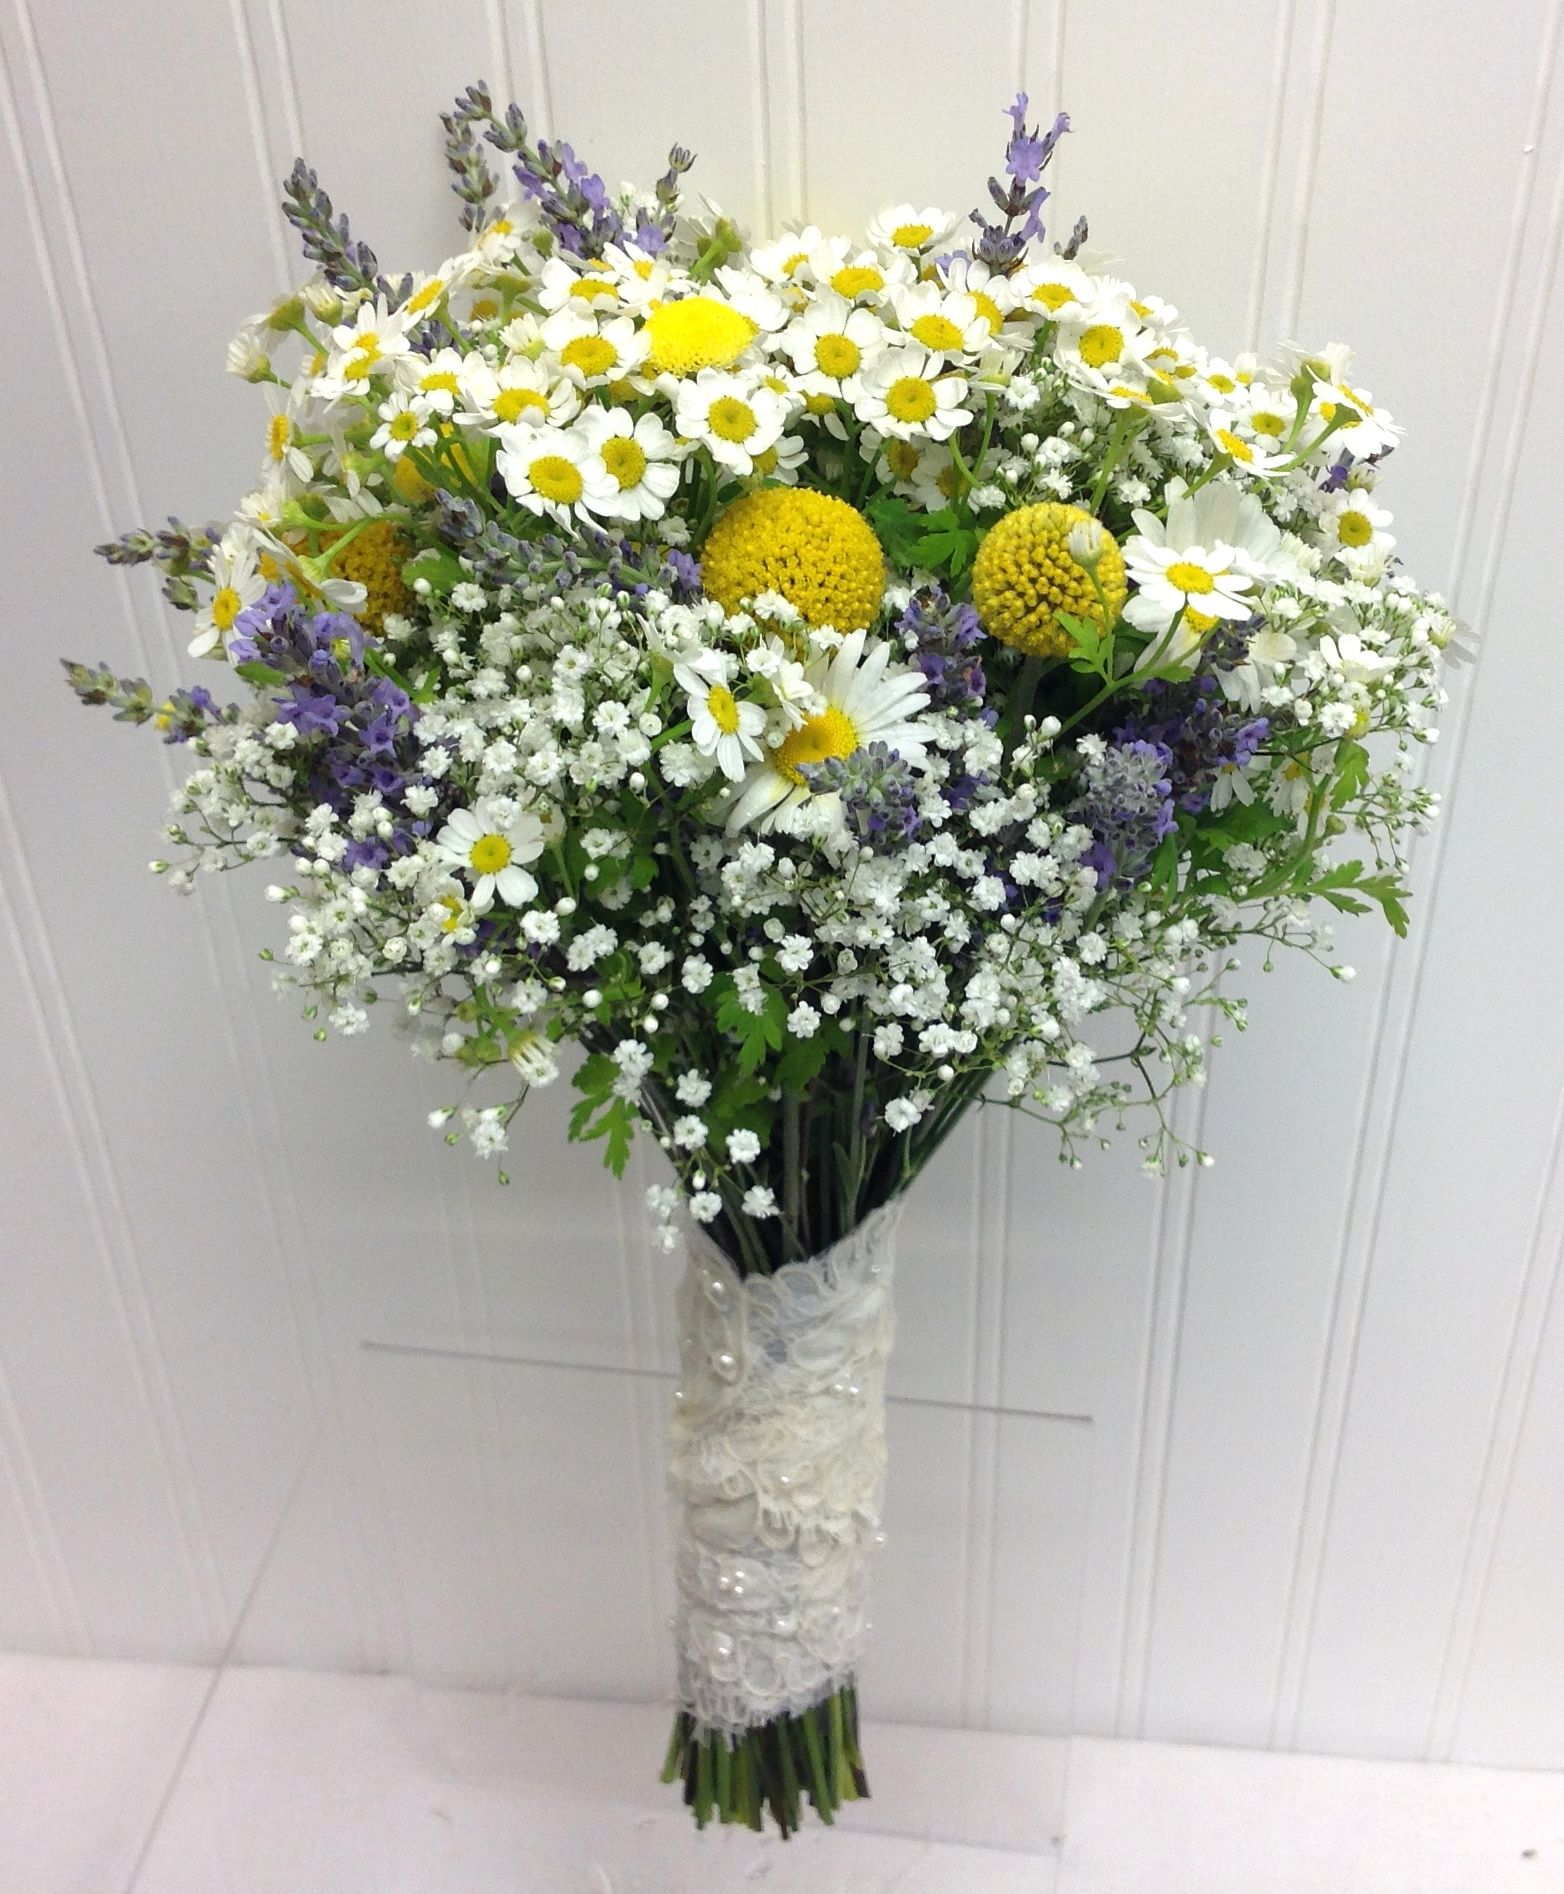 Garden Bridal Bouquet With Chamomile Lavender Craspedia And Babies Breath Designed By Wendy A Yellow Wedding Flowers Lavender Bouquet Cheap Wedding Flowers